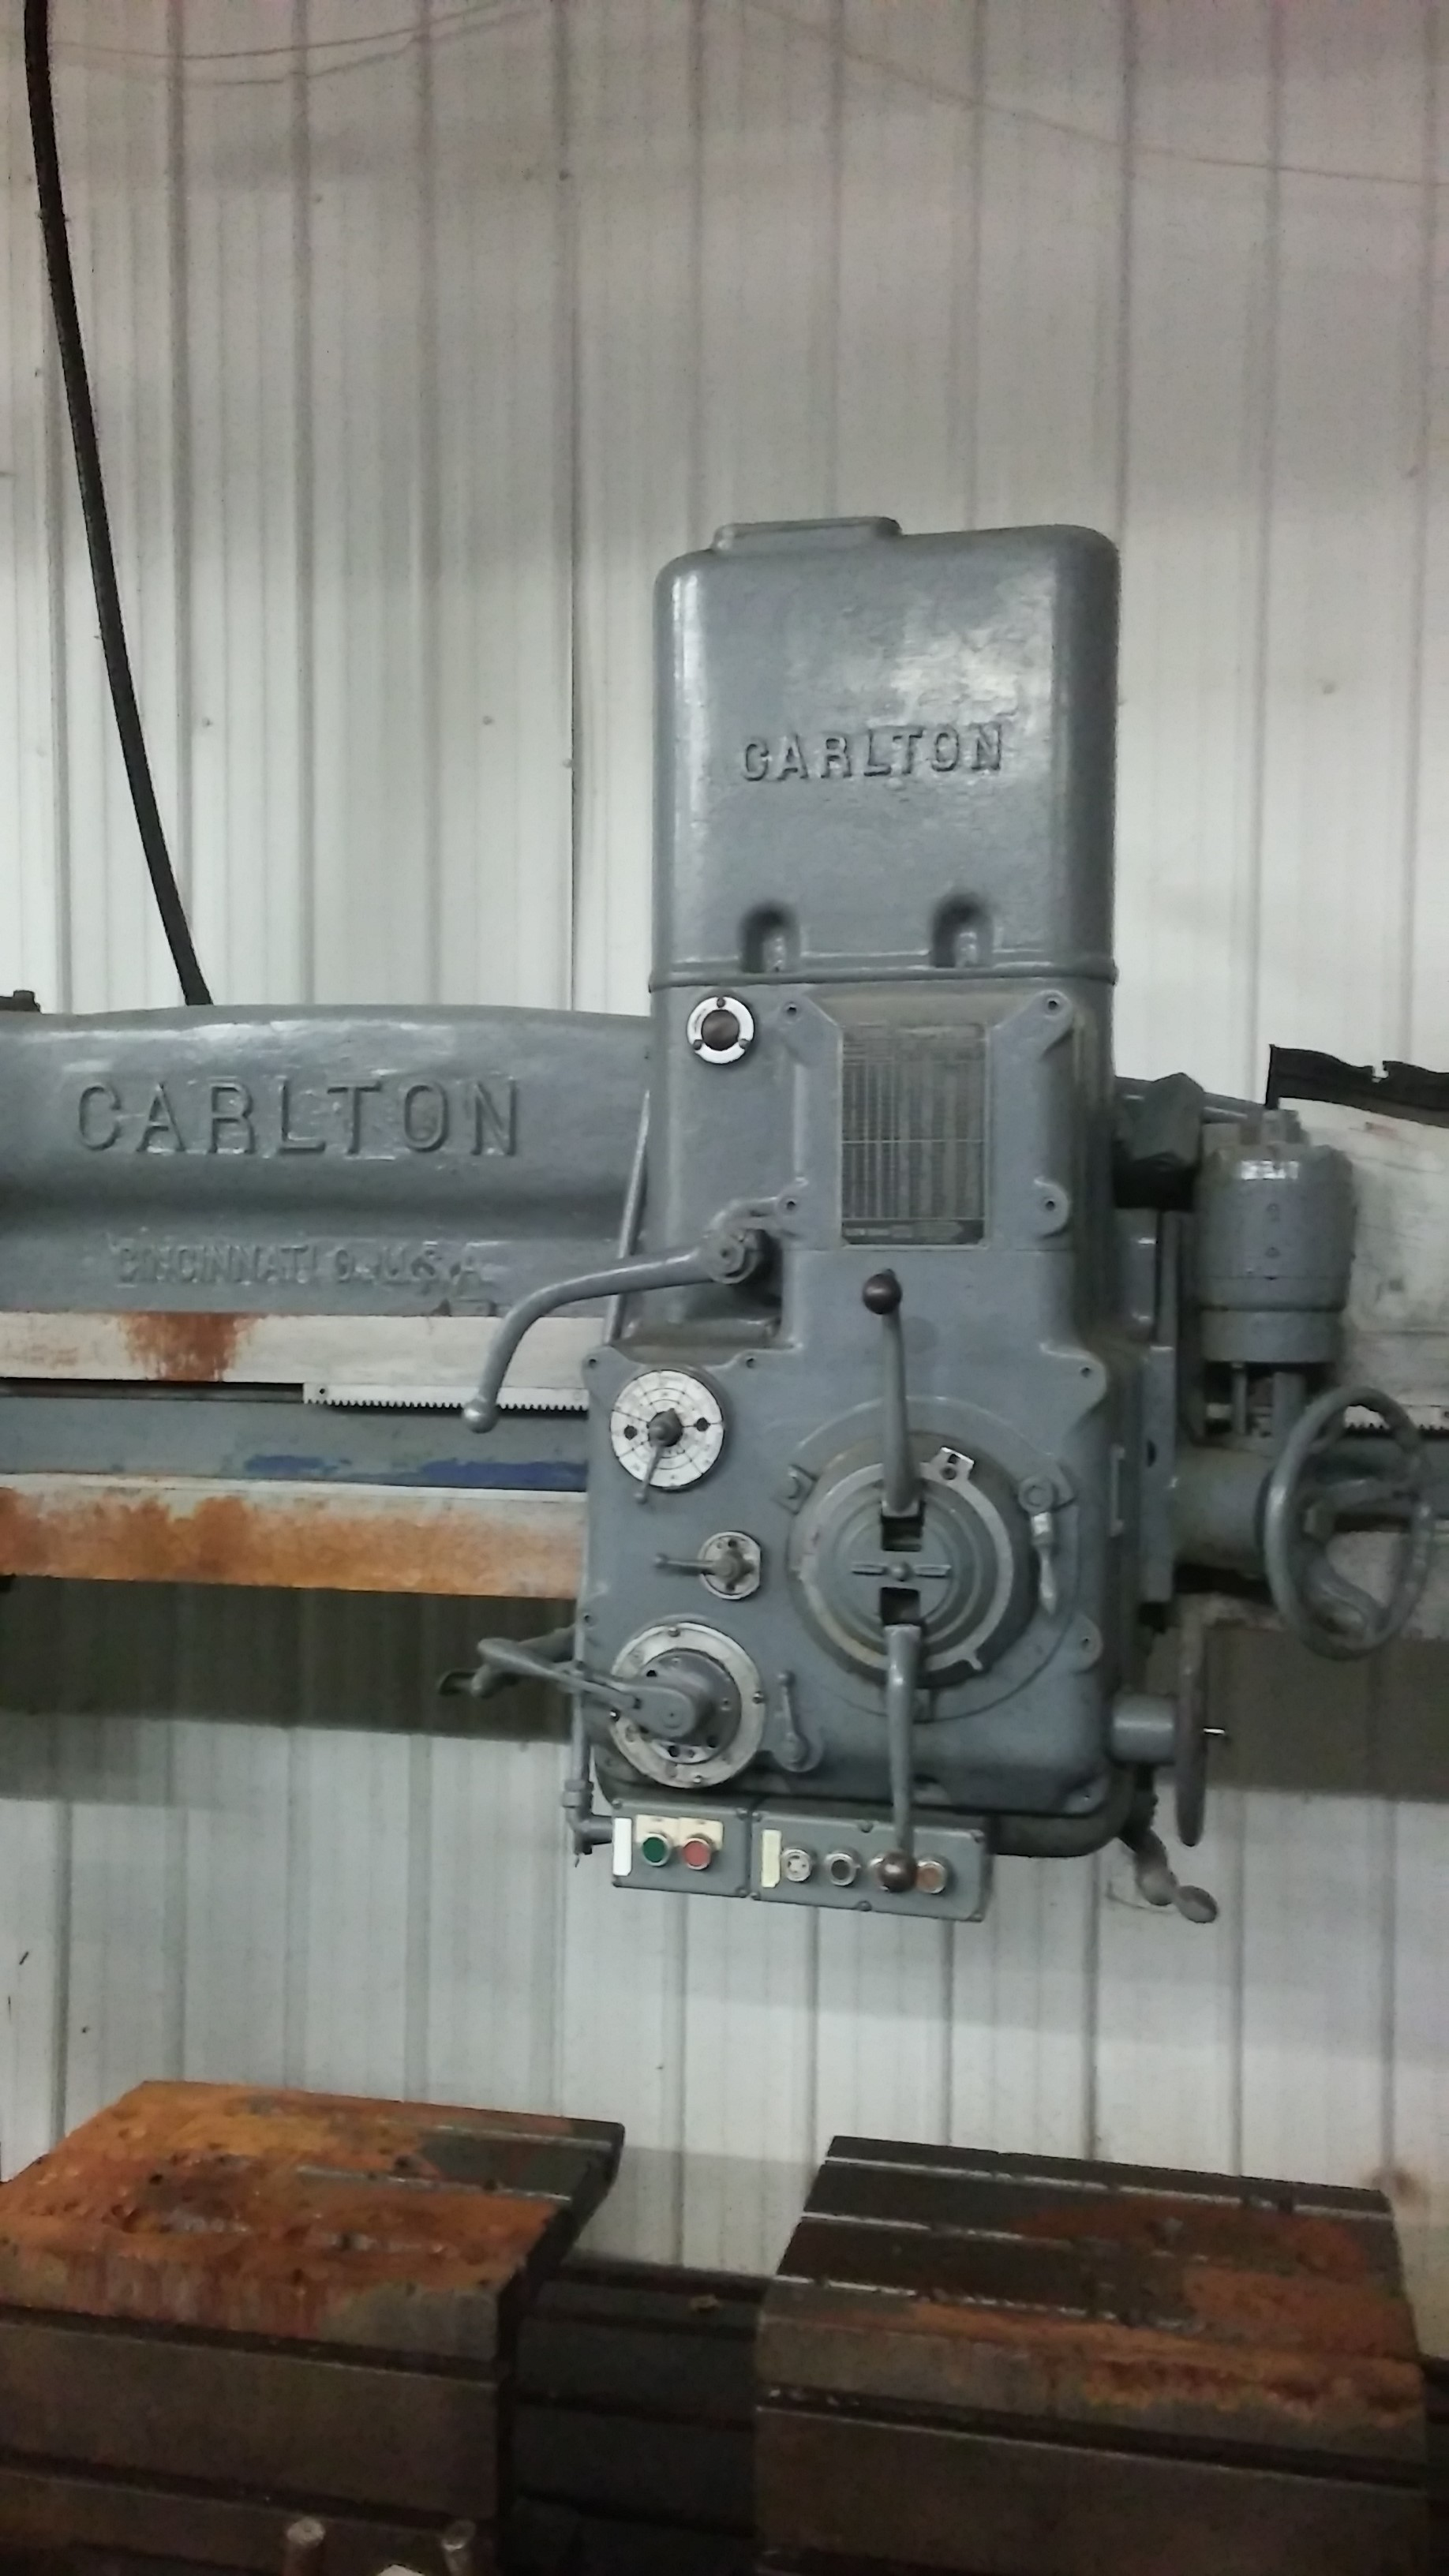 1 - PREOWNED CARLTON 7 ft ARM X 17 in  COLUMN RADIAL DRILL, <br>S/N: 1000, YEAR: 1960